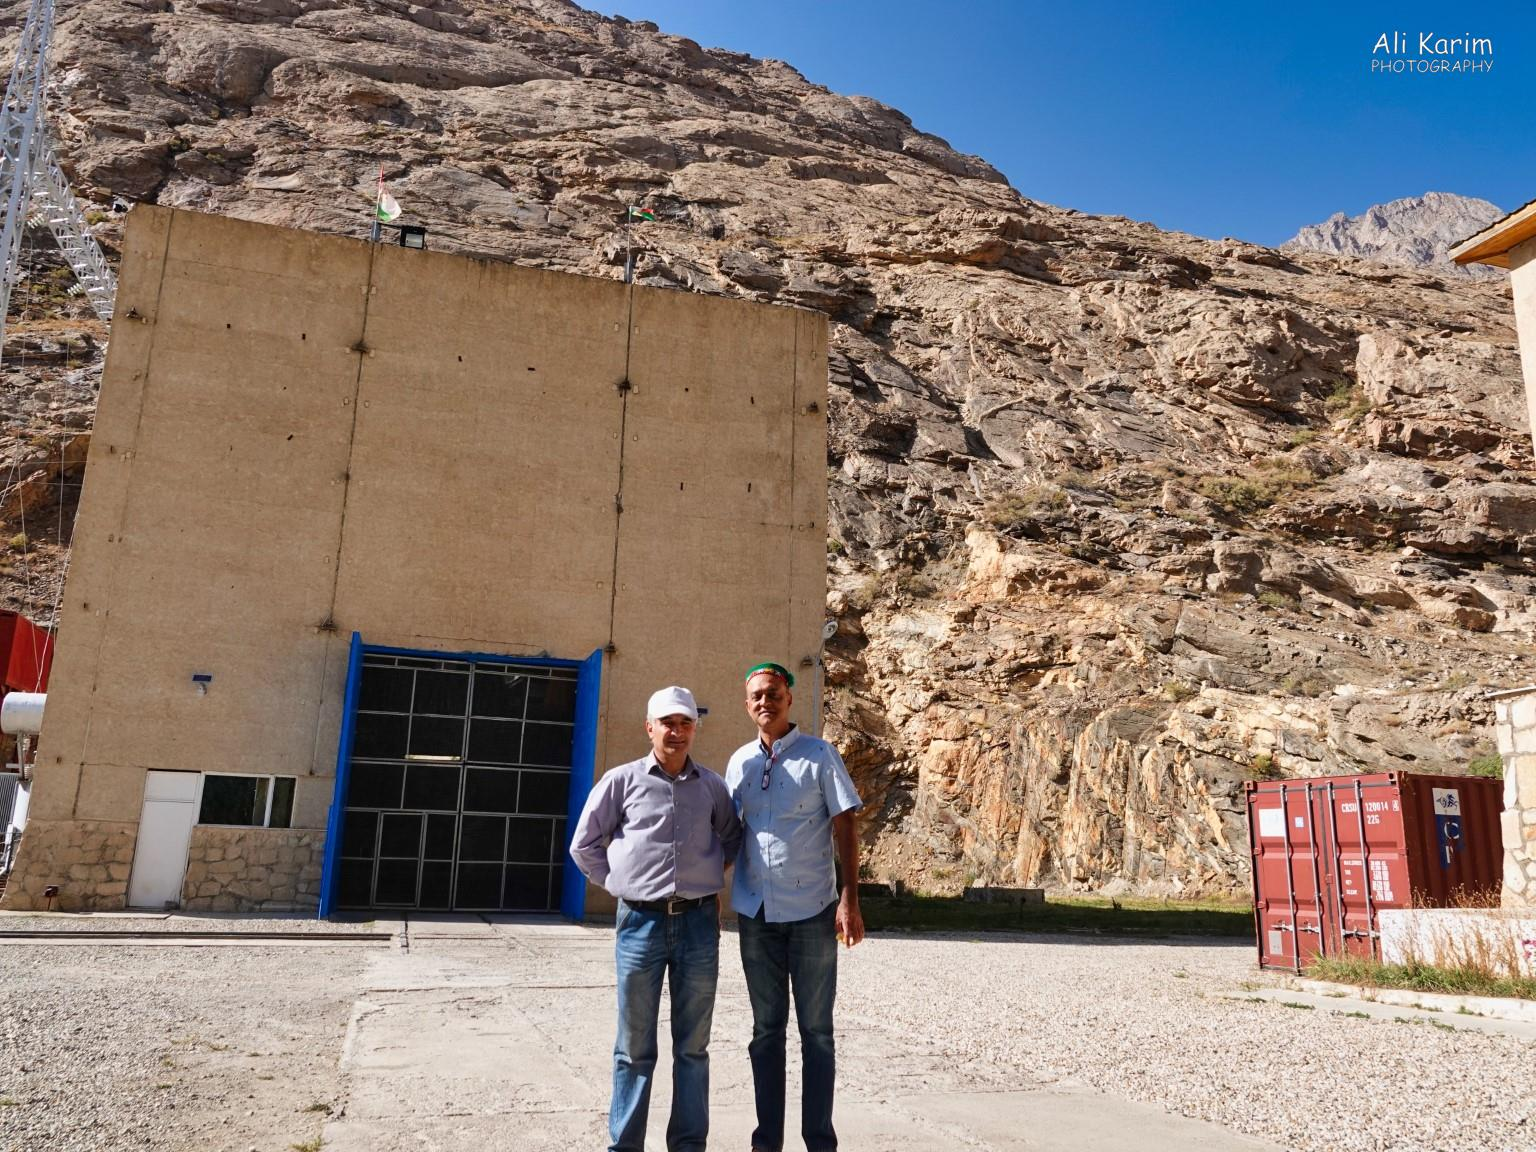 More Khorog, Tajikistan With the Chief Engineer outside the generators building